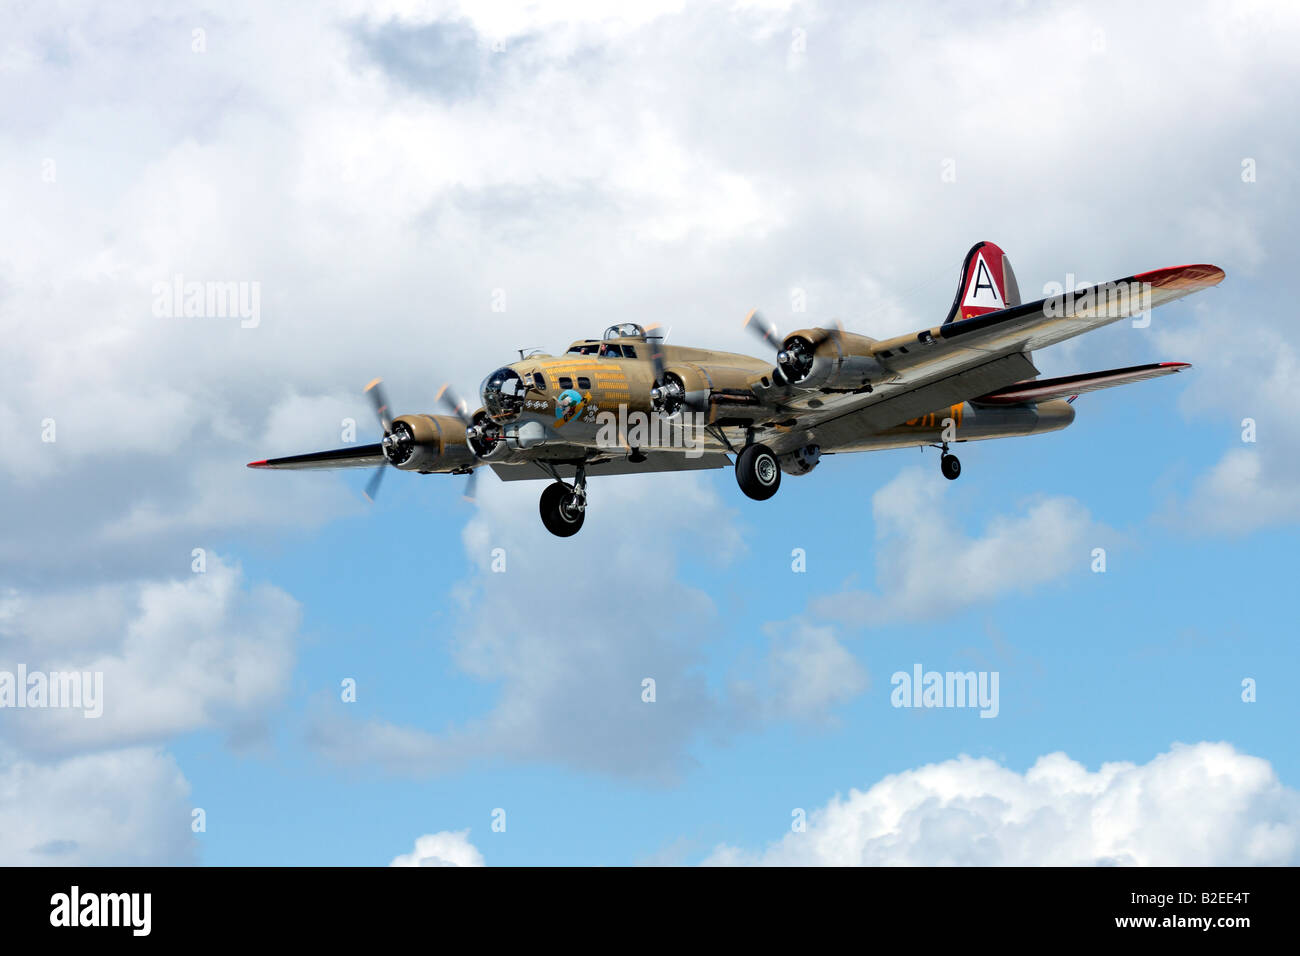 a B17 bomber WWII aircraft Stock Photo, Royalty Free Image ...